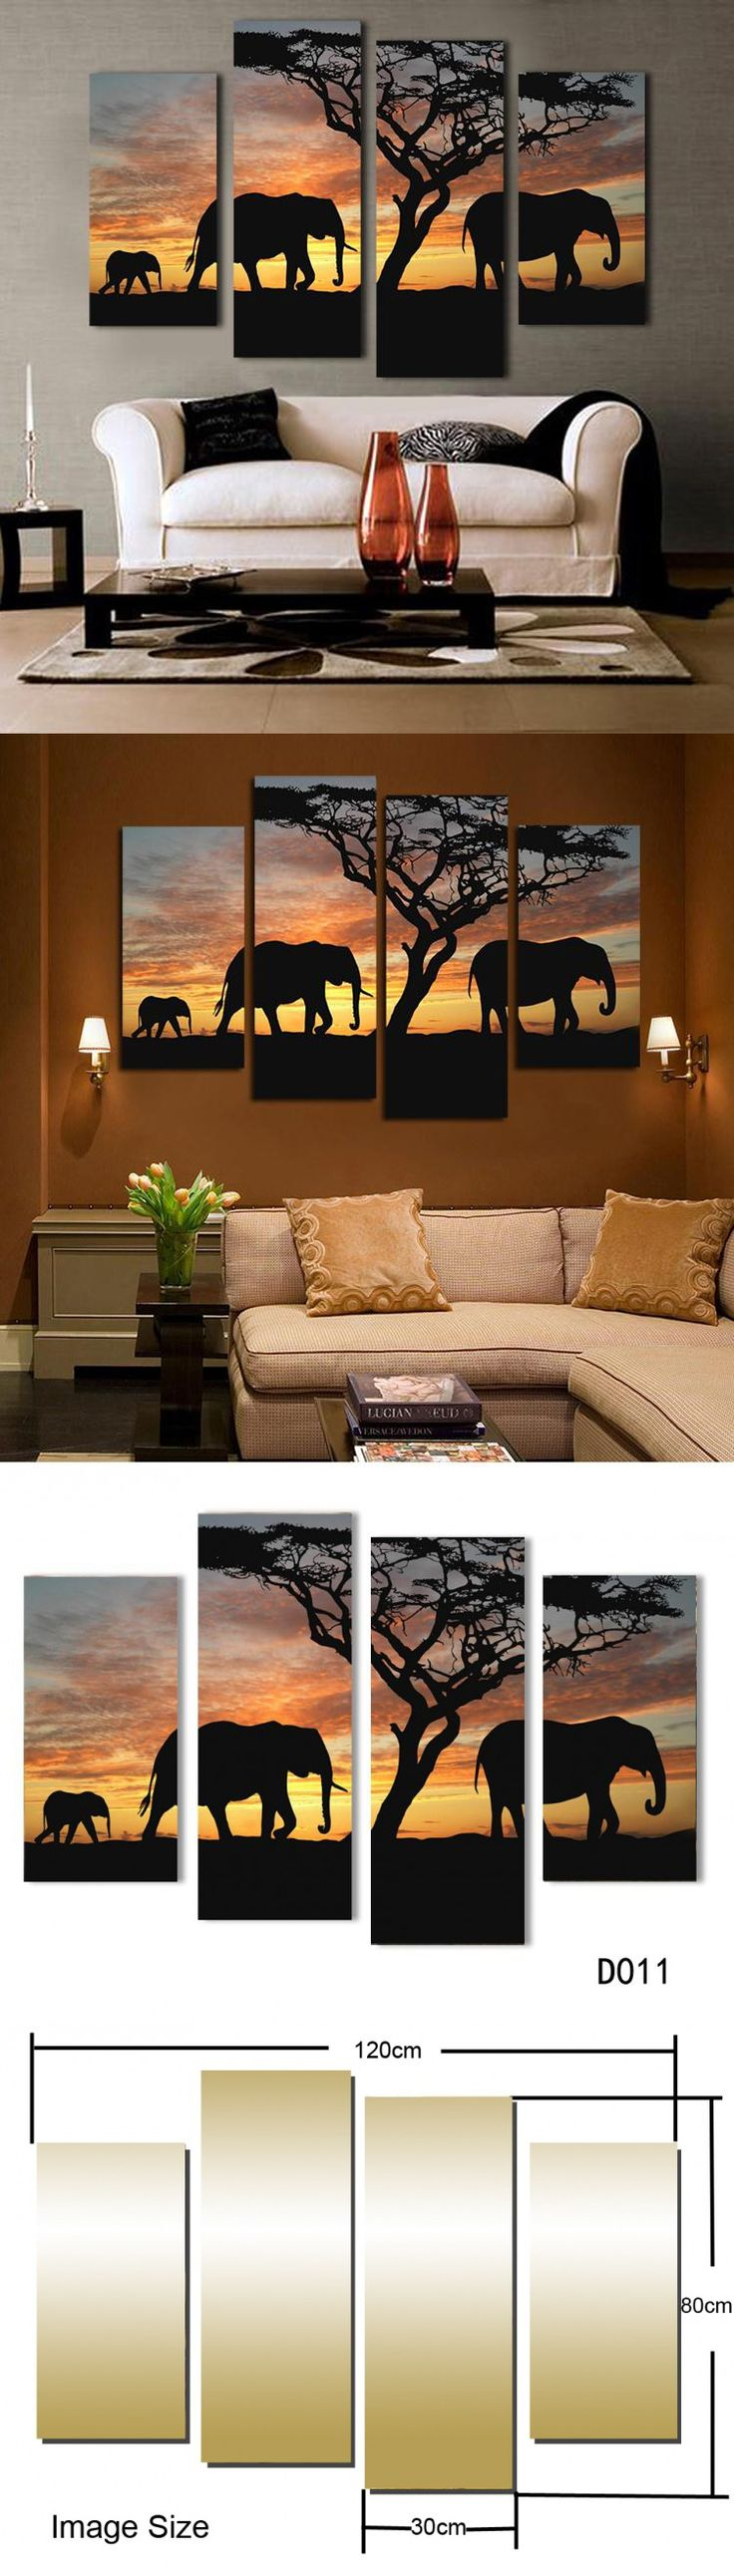 5 Ppcs Sunset Elephant Painting Canvas Wall Art Picture Home Decoration Living Room Canvas Print Modern Painting--Large Canvas $36.5